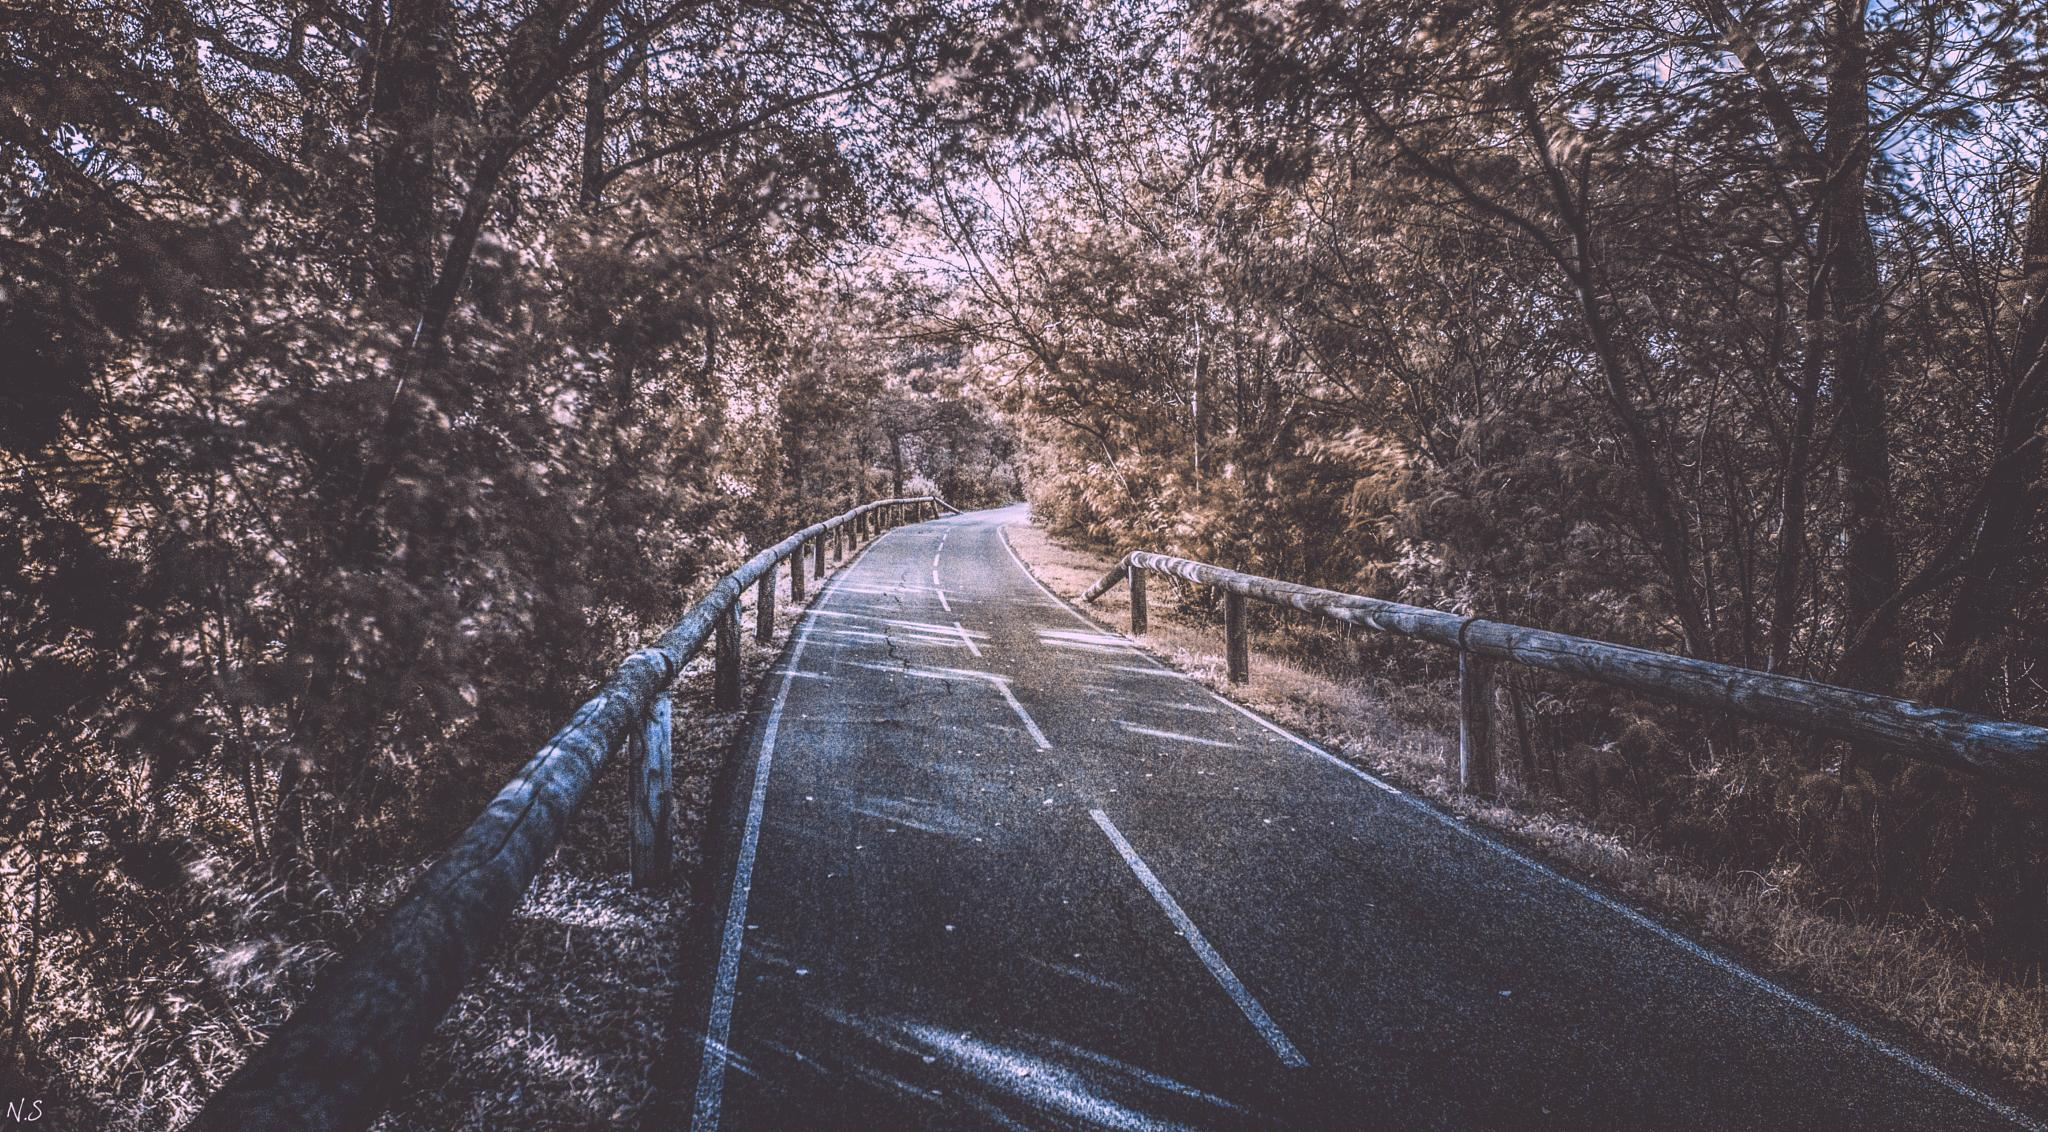 Infrared Way by Nicolas Scagliarino